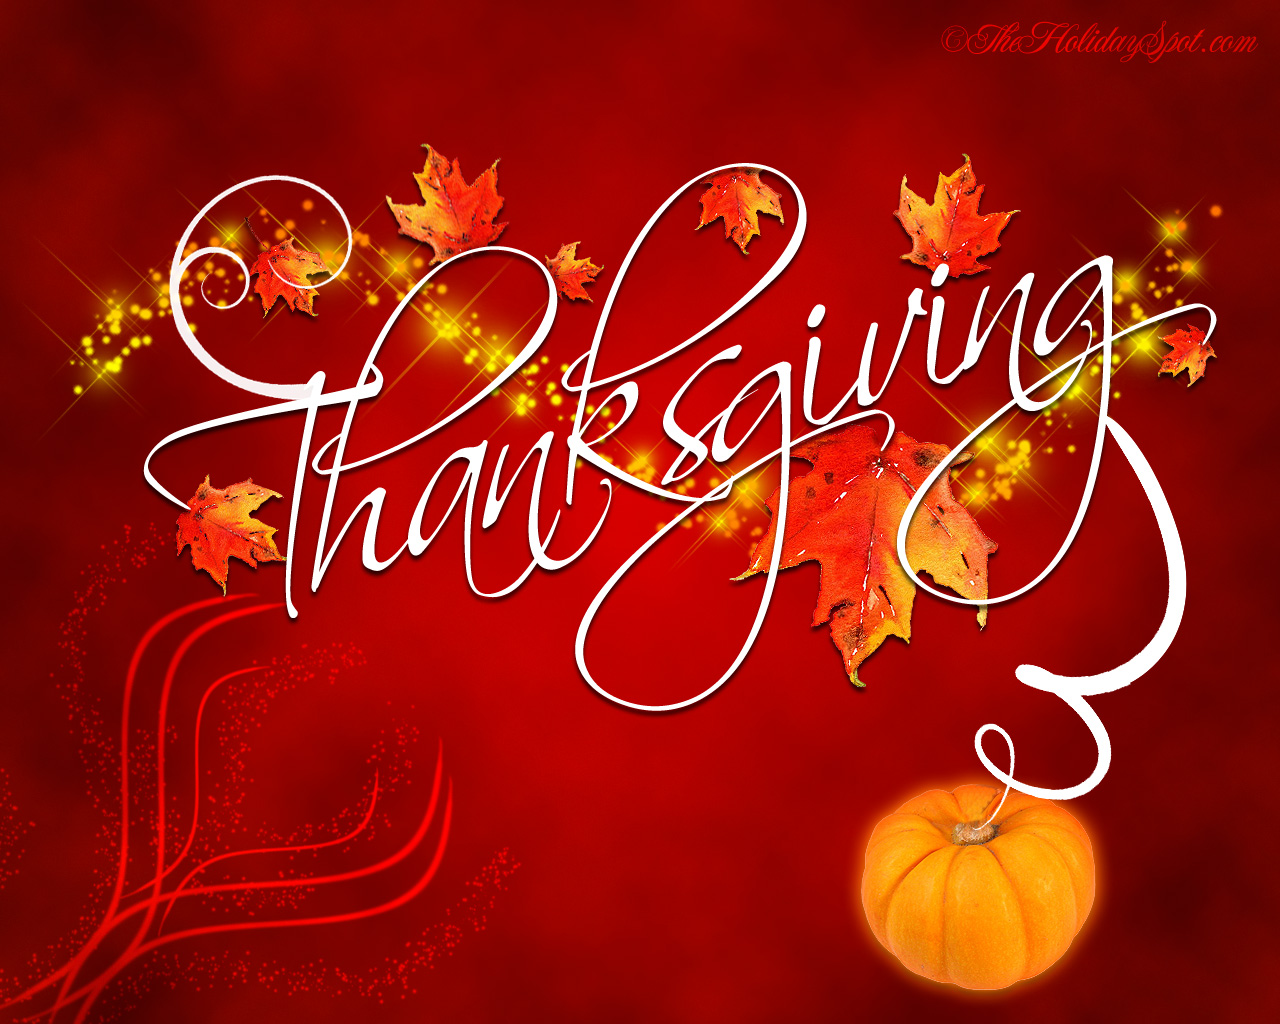 Thanksgiving Wallpaper Clipart - Clipart Kid